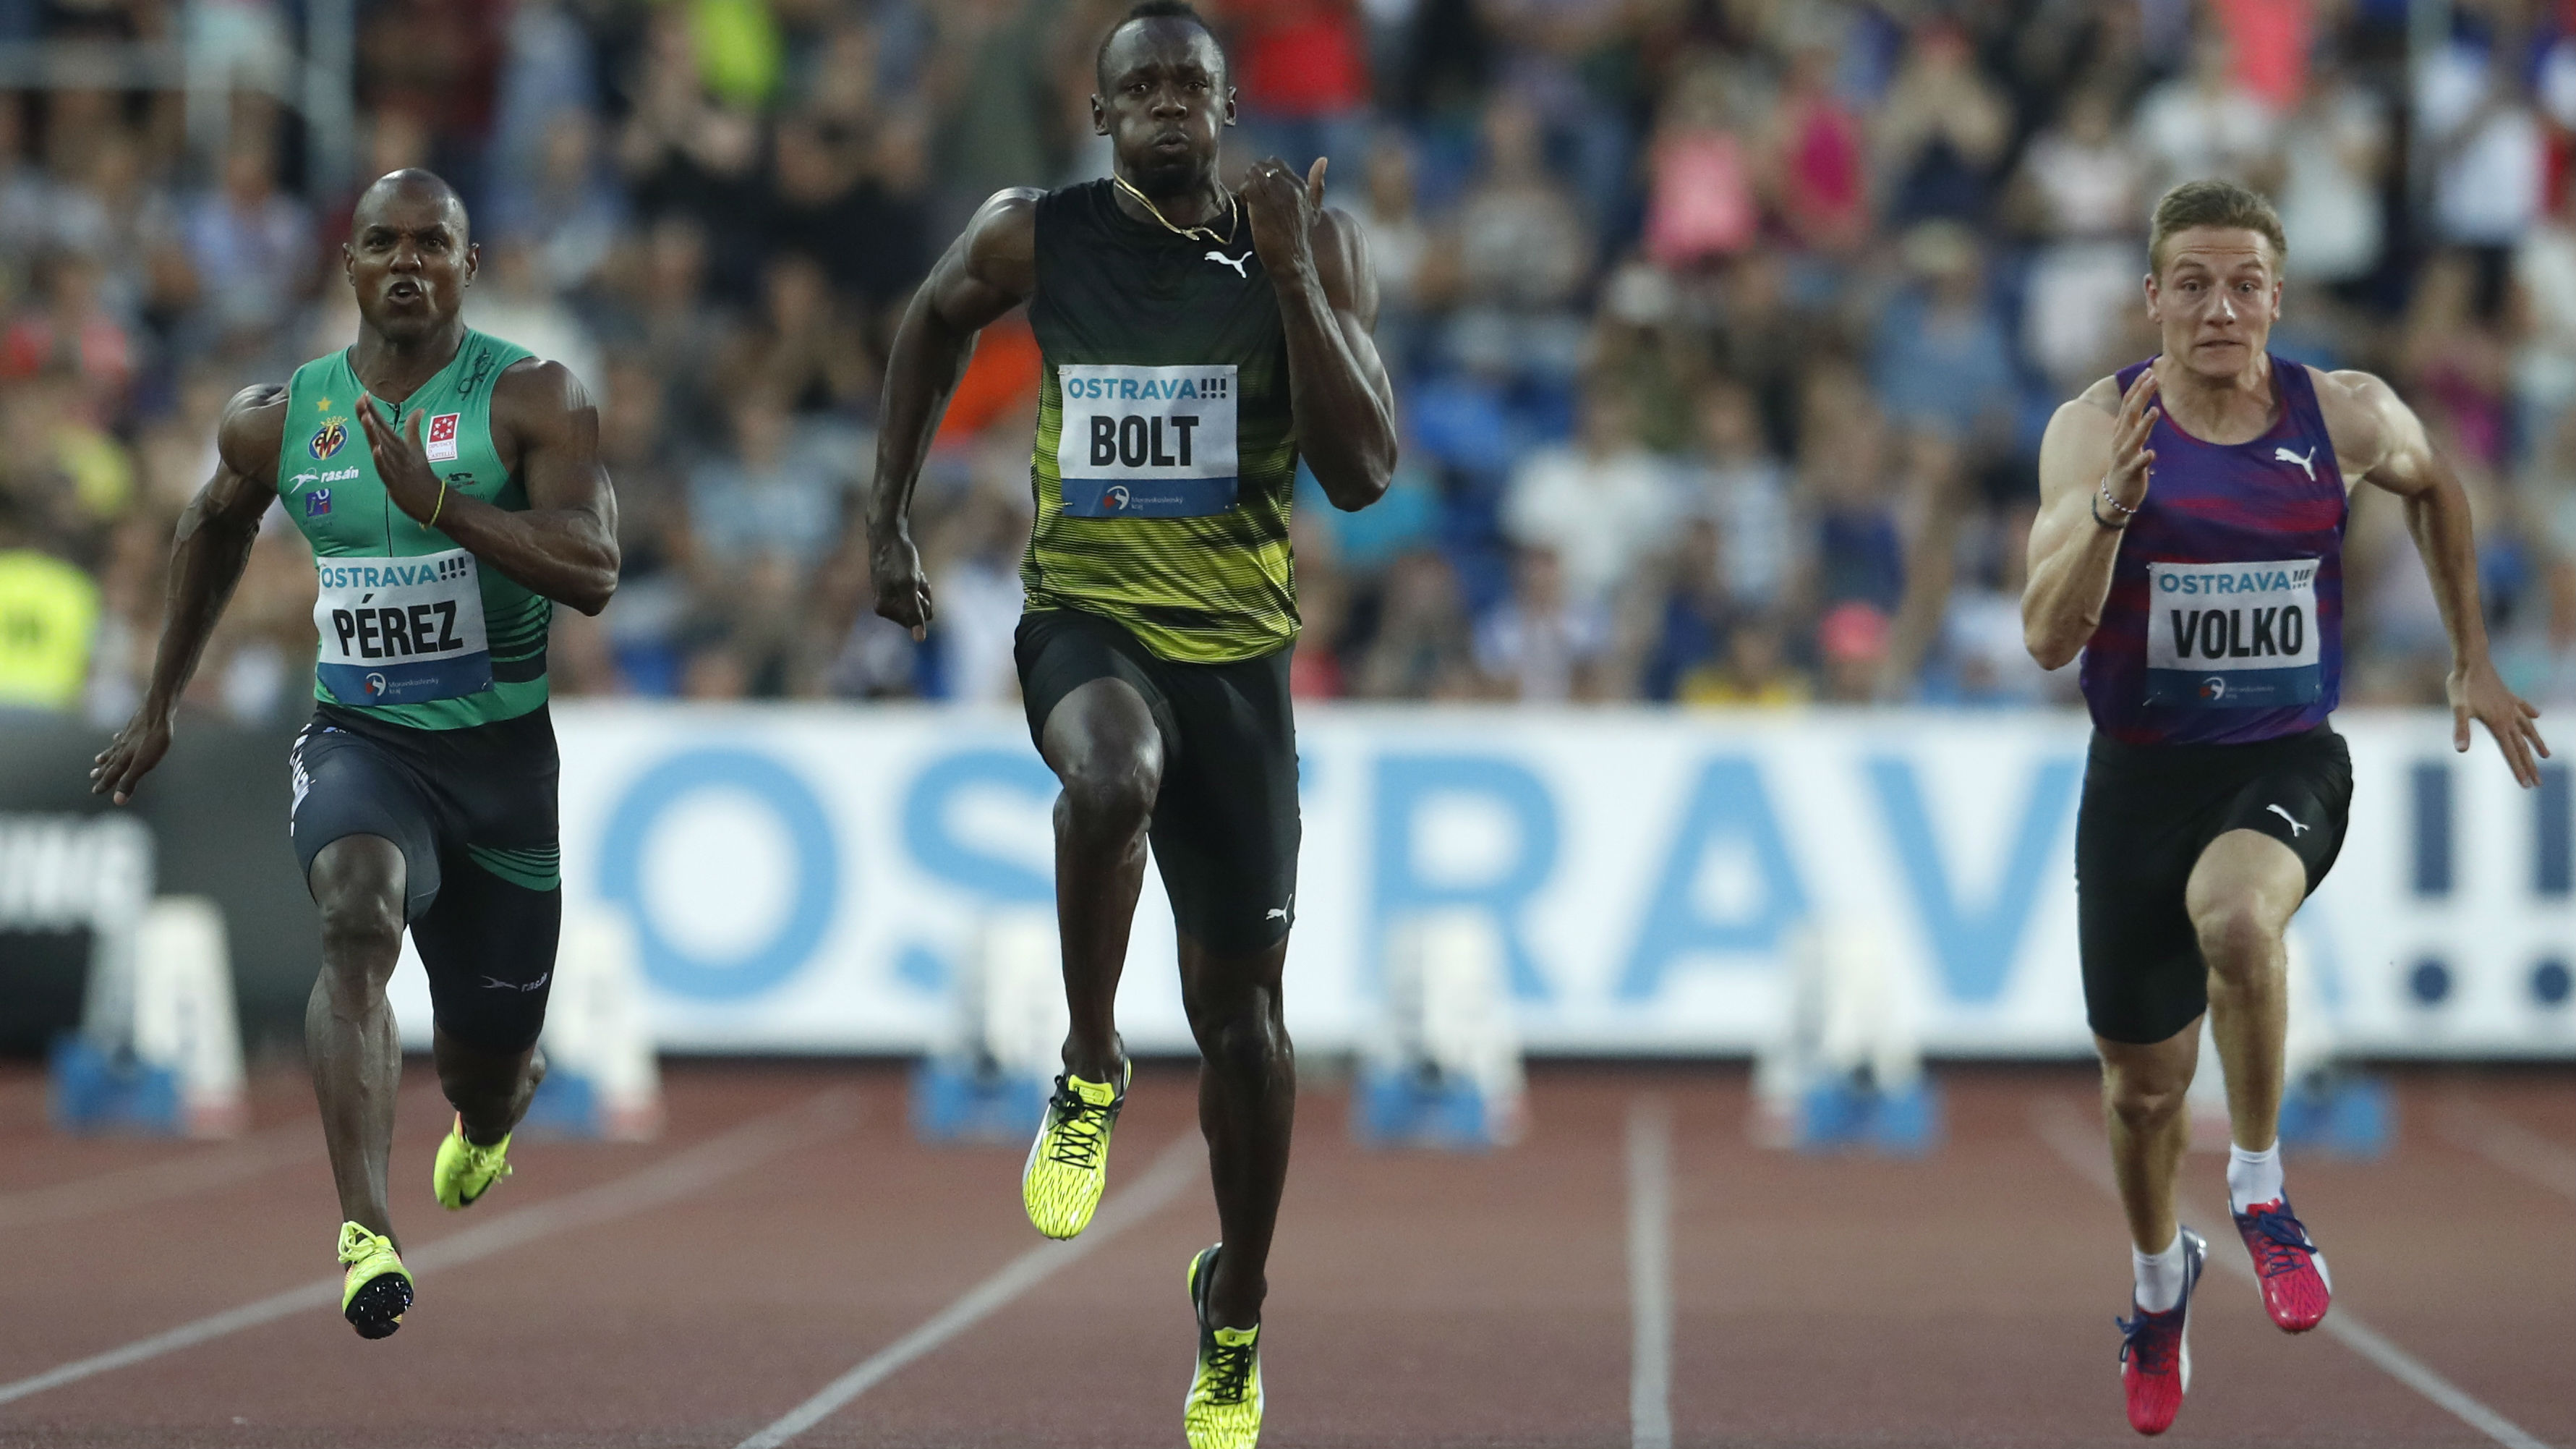 Usain Bolt running in between two other sprinters on a field.